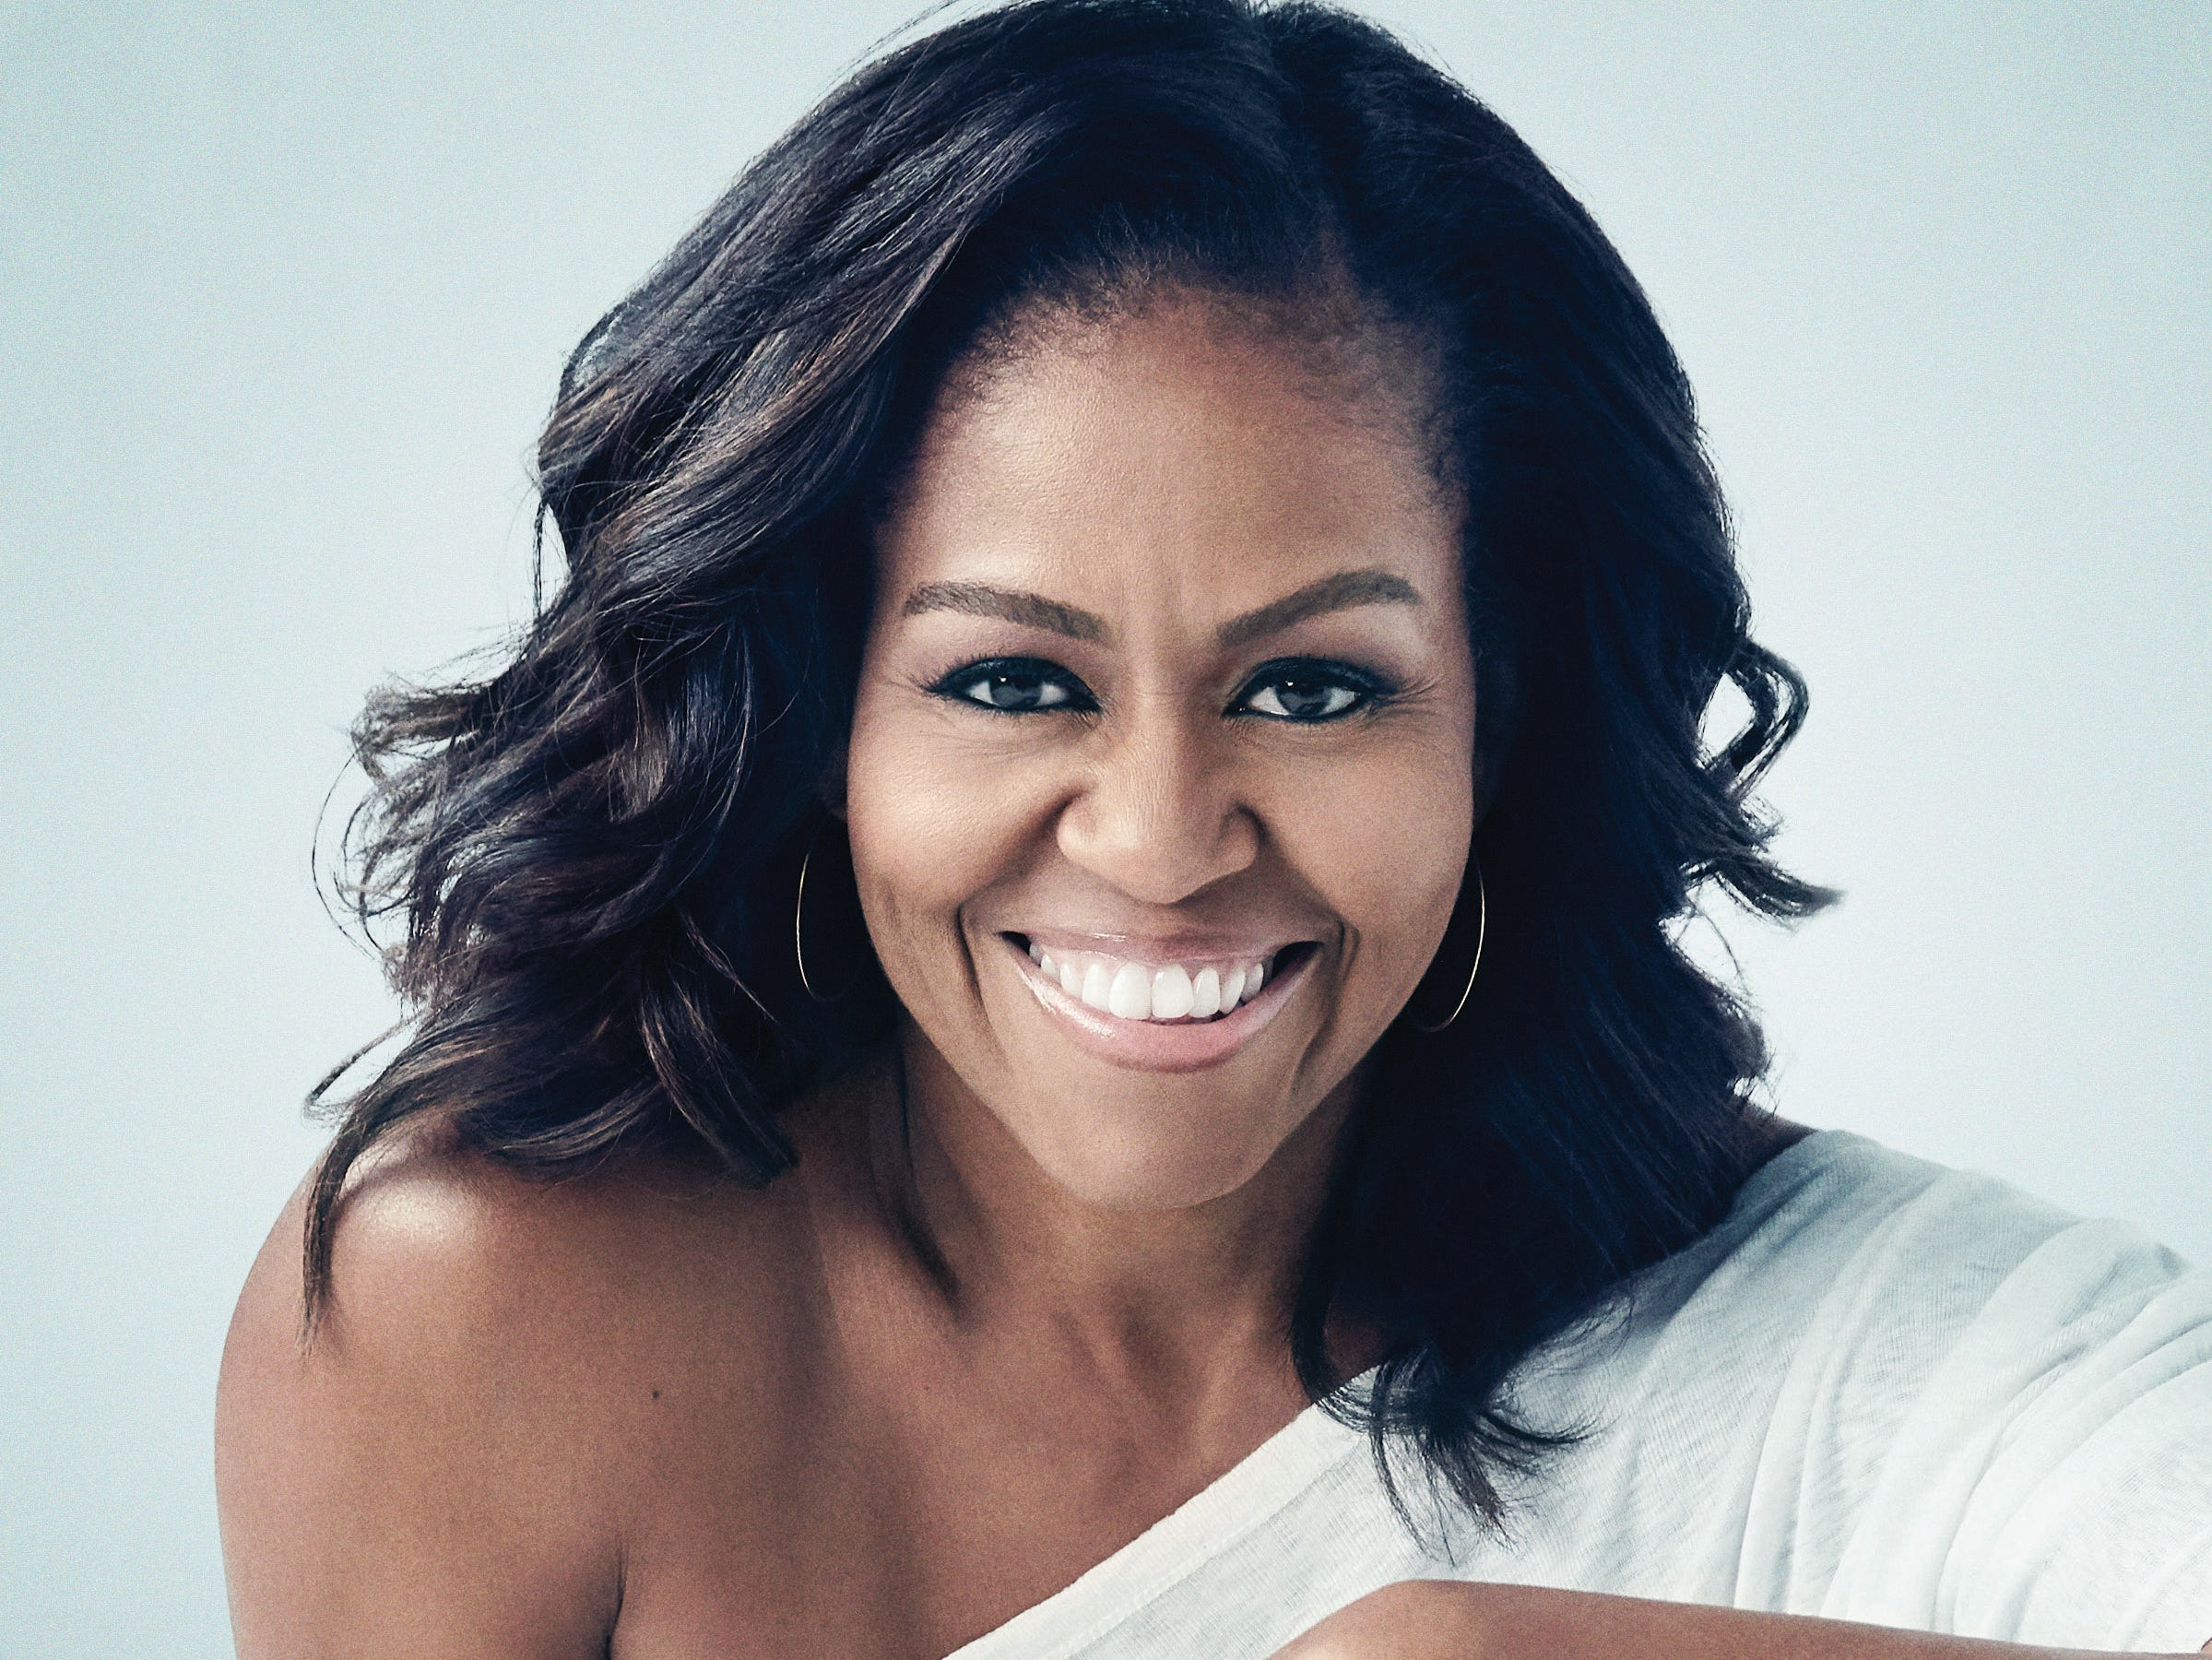 Michelle Obama tour makes only Florida stop in May